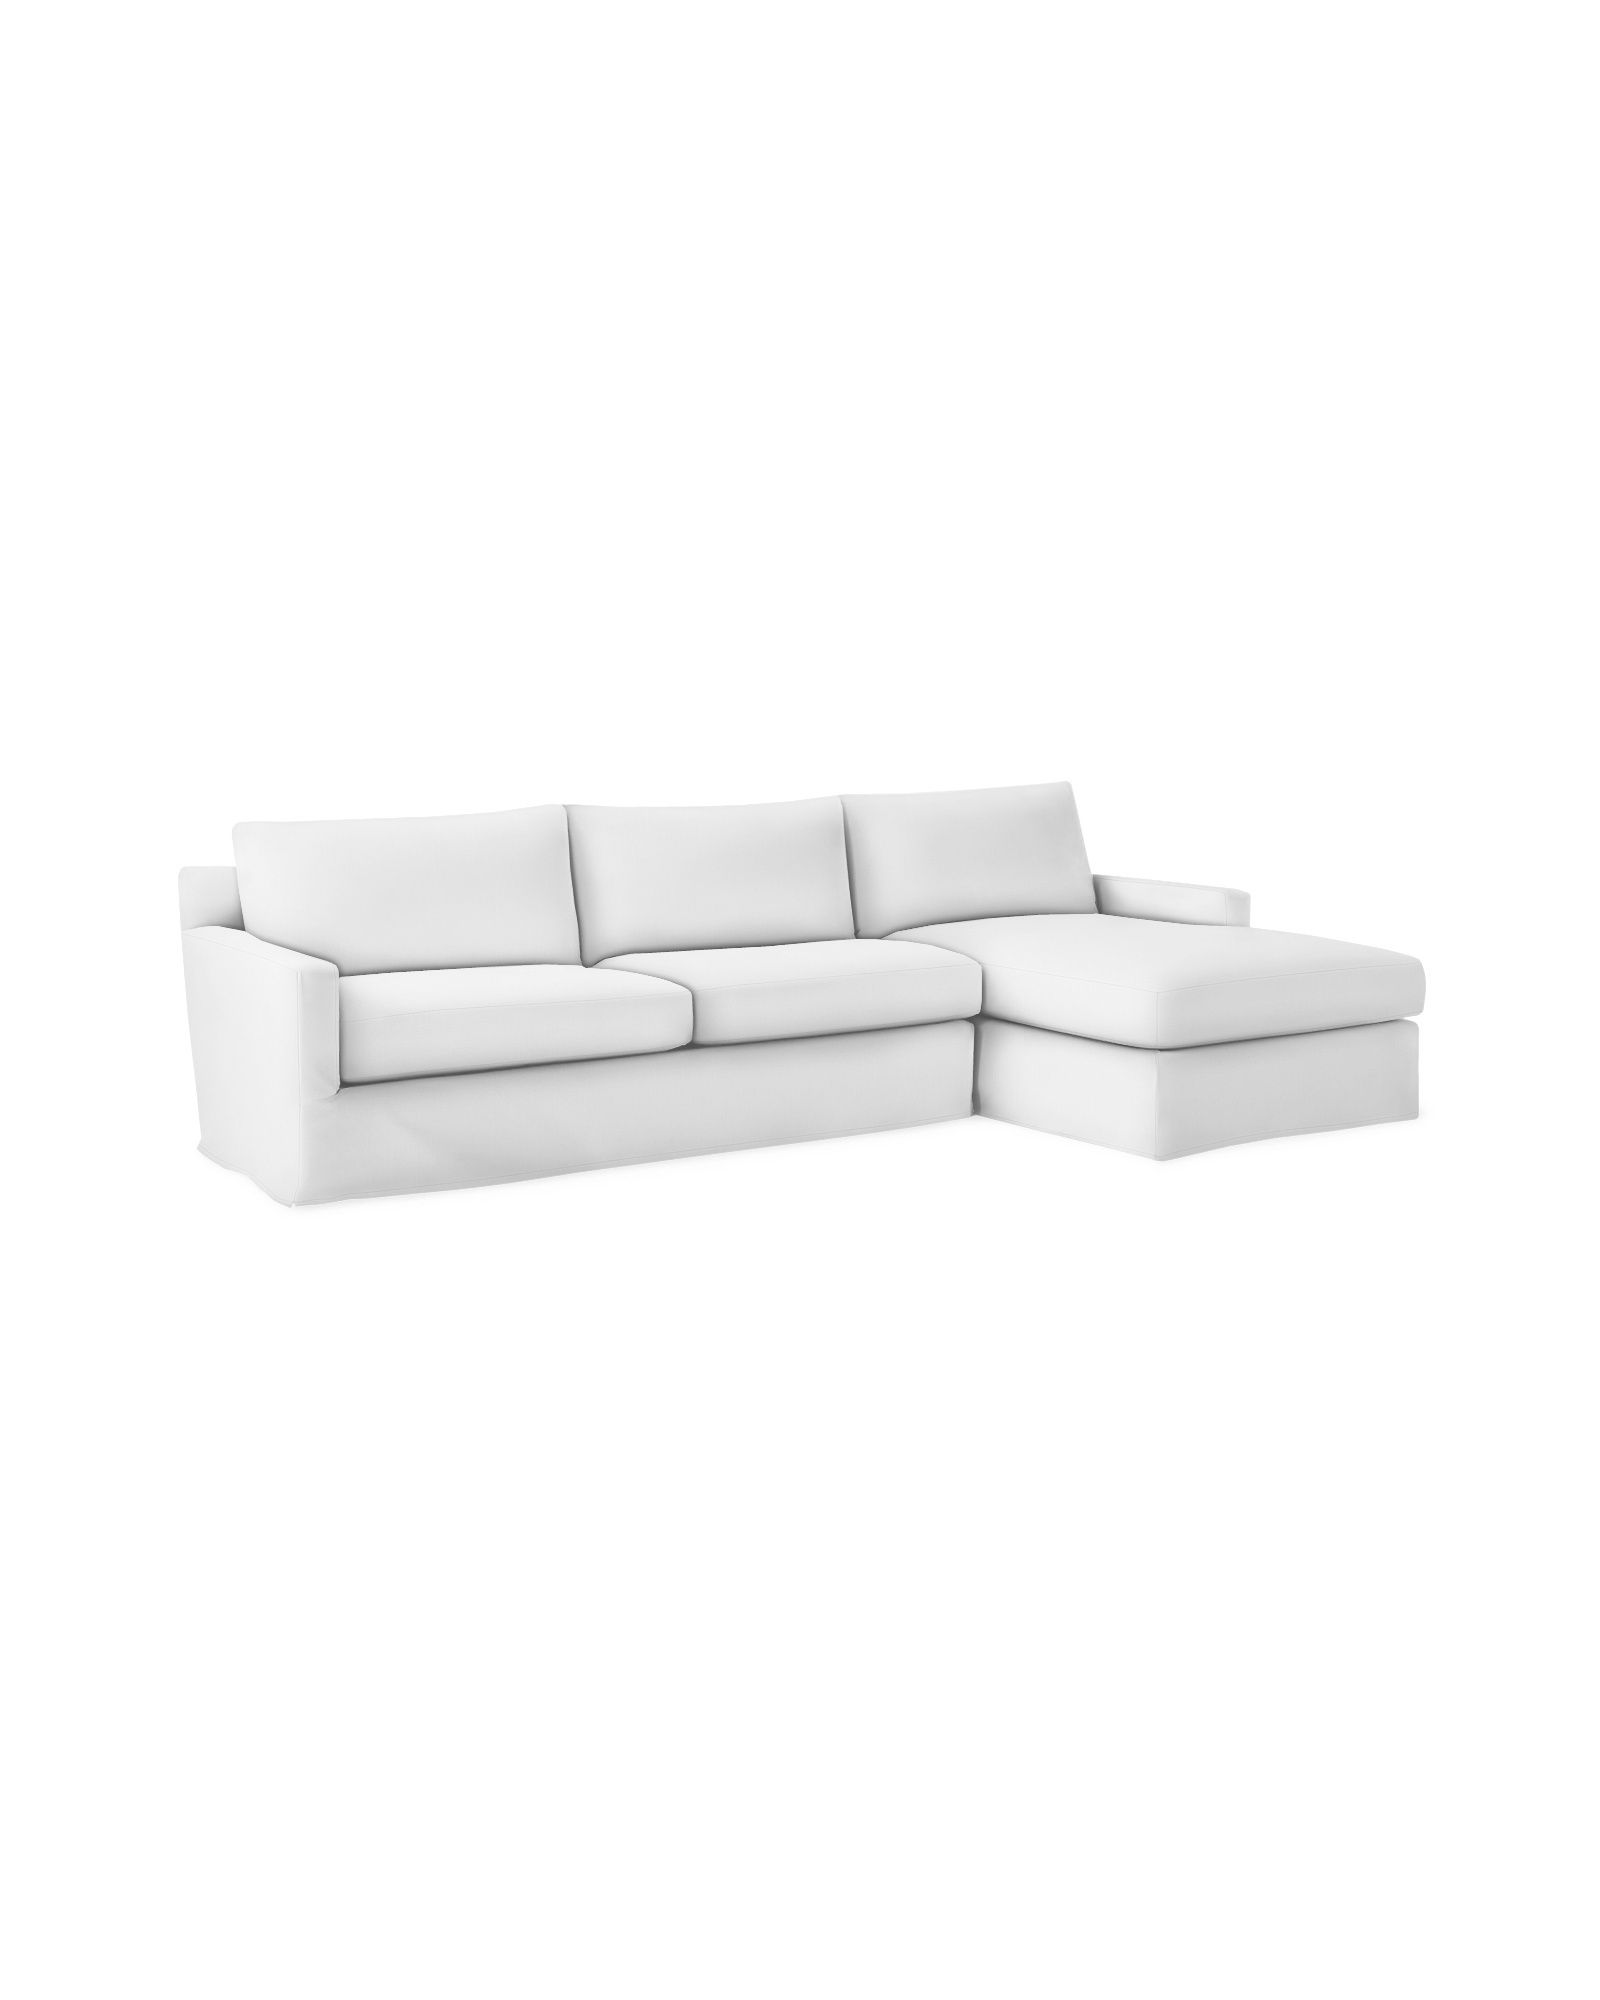 Summit Slipcovered Chaise Sectional - Right-Facing